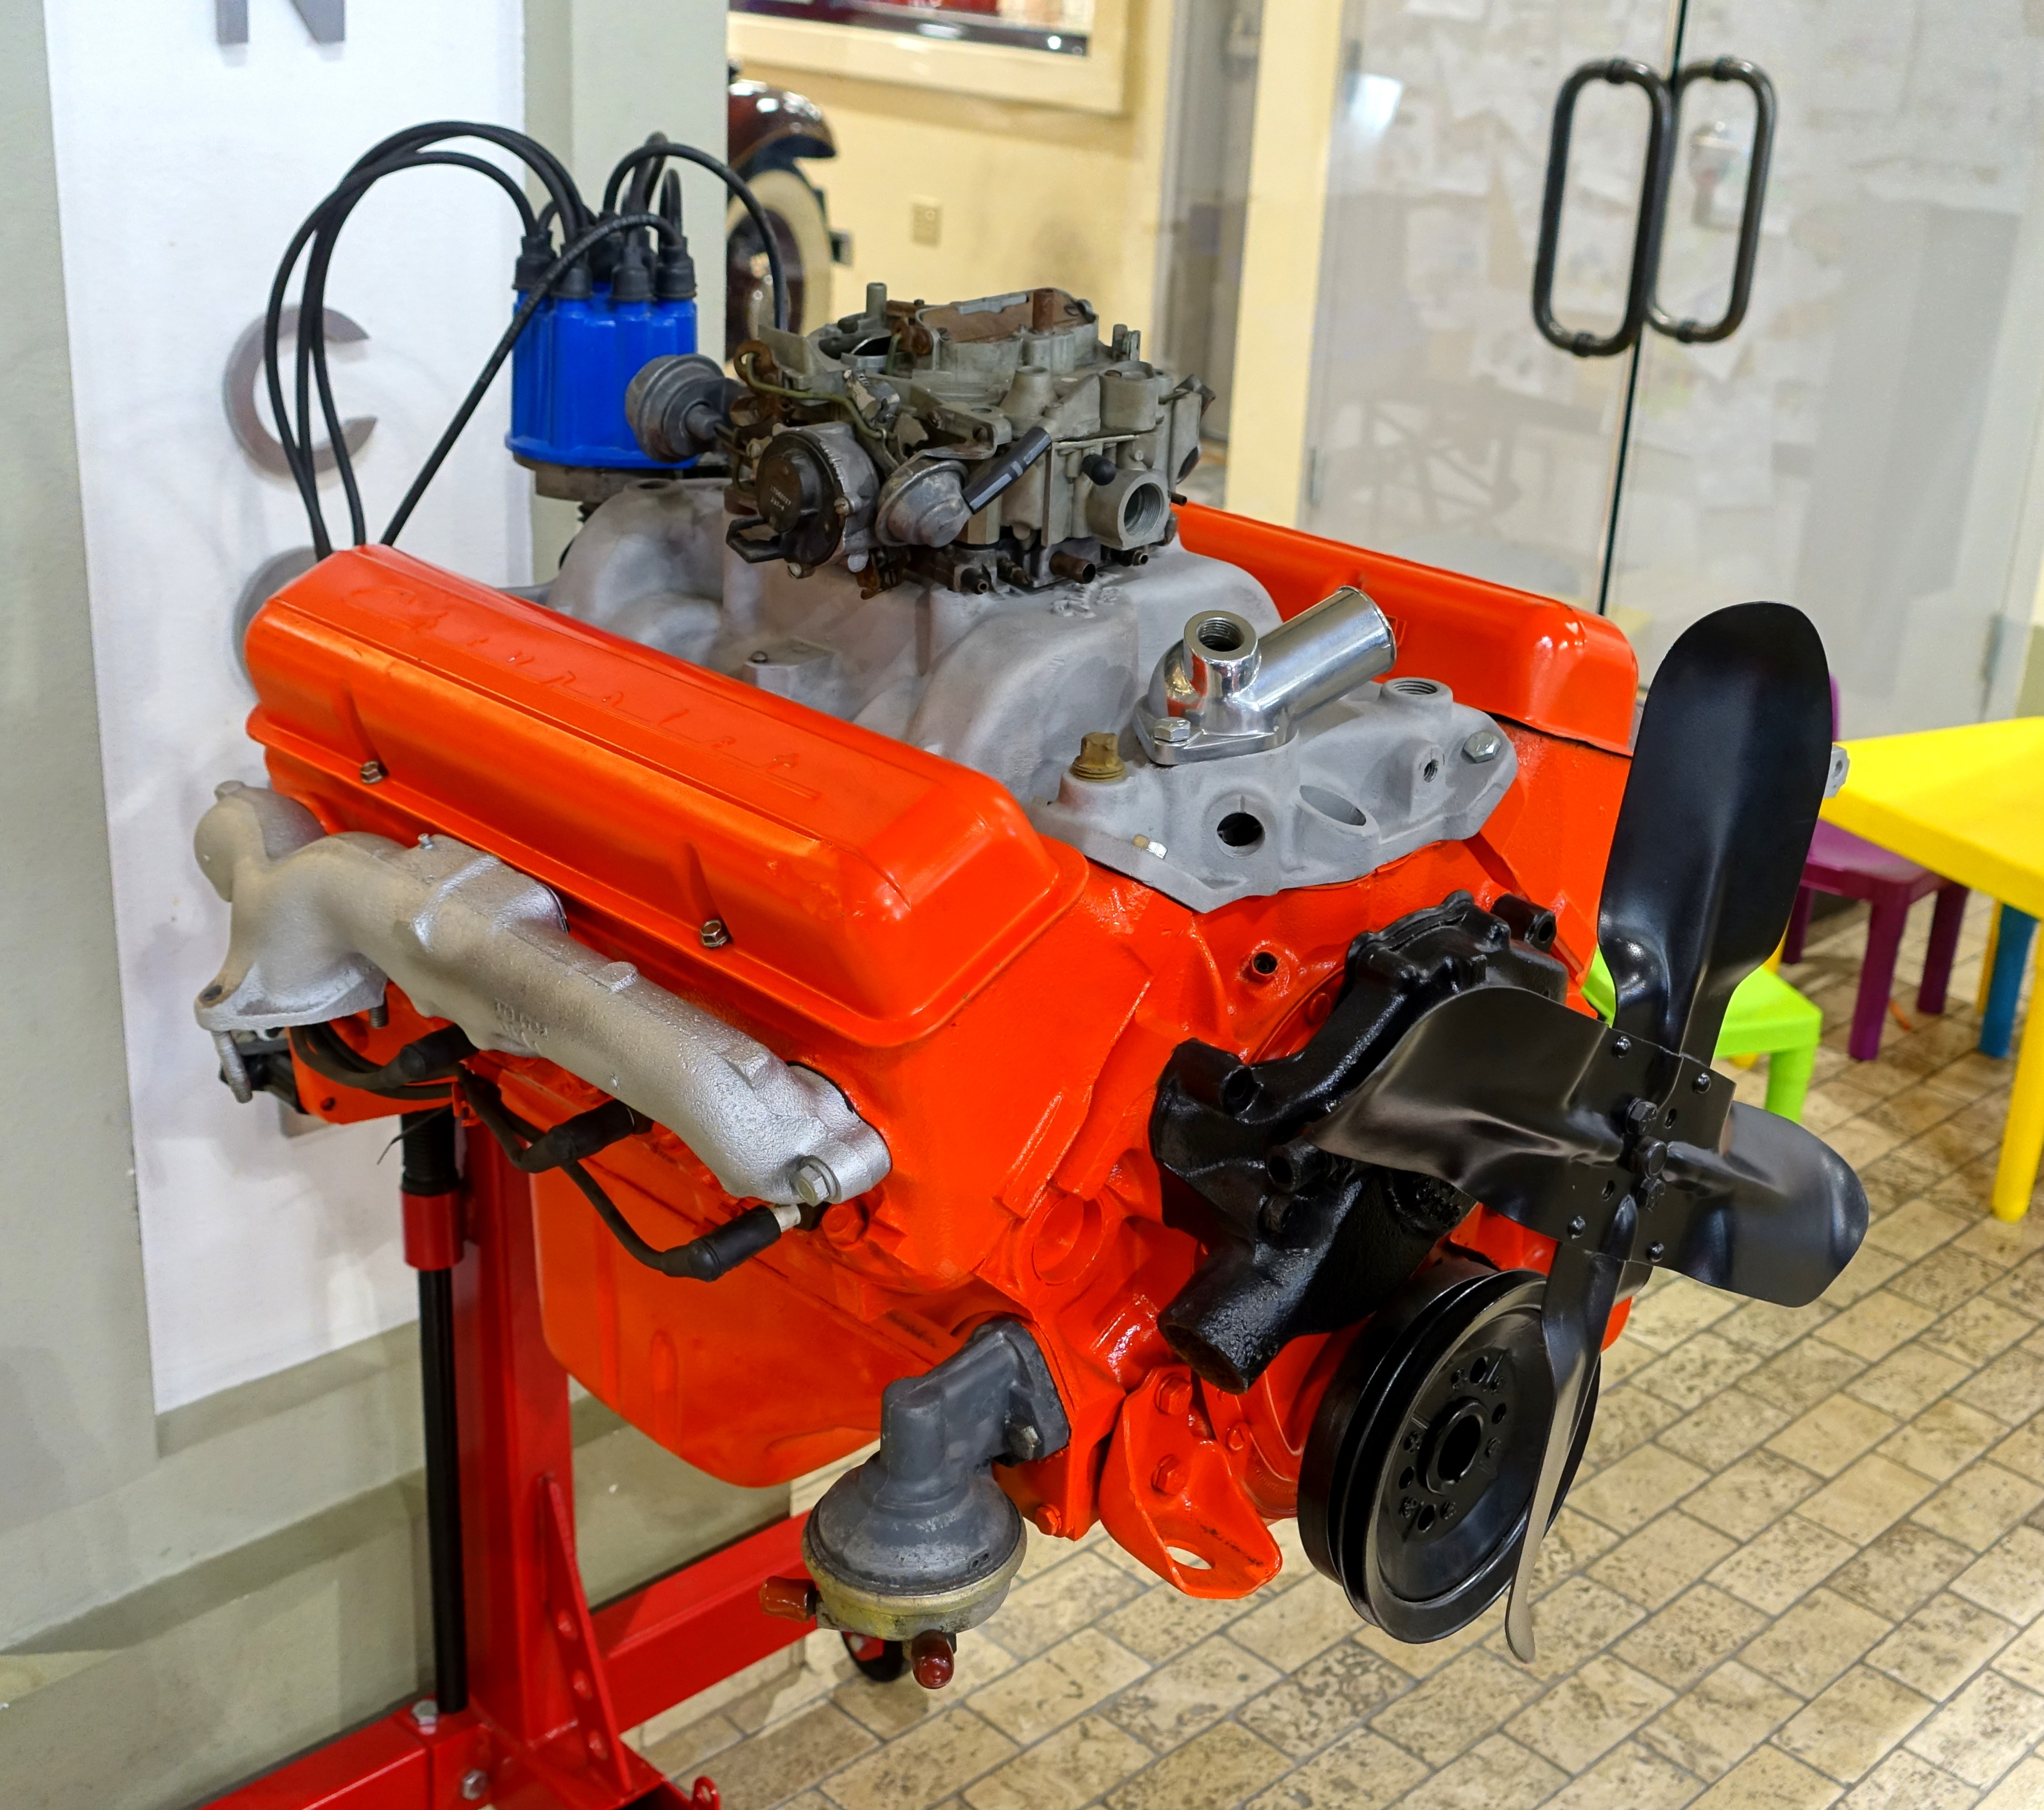 Tracing Engines by the Serial Number Of Ecotec 2.2 V8 Engine Of Tracing Engines by the Serial Number Of Ecotec 2.2